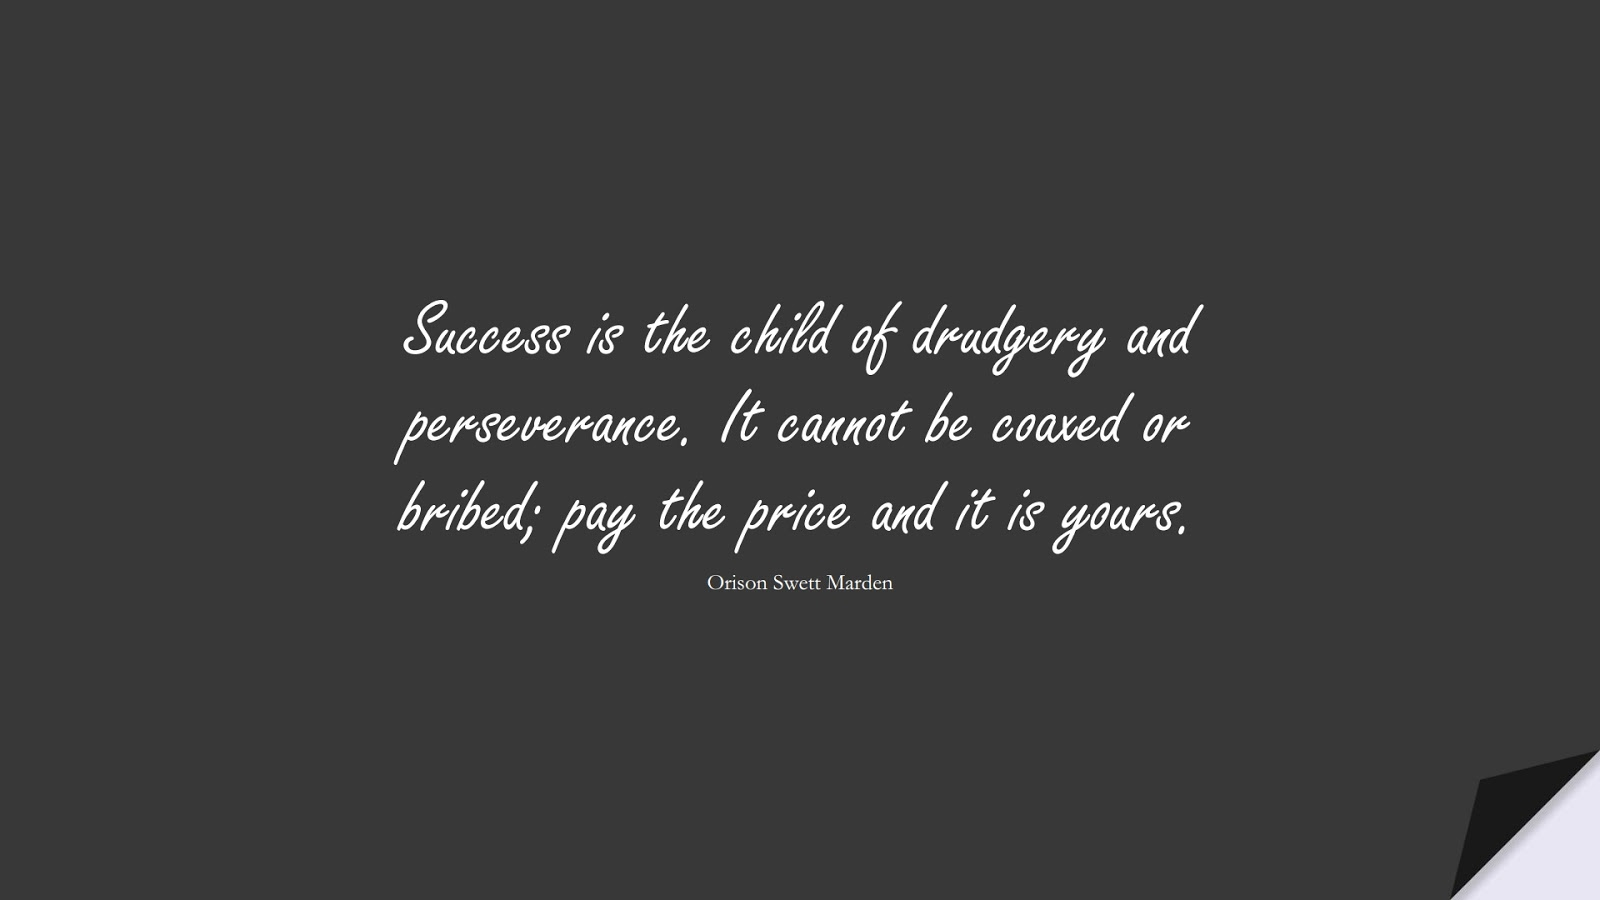 Success is the child of drudgery and perseverance. It cannot be coaxed or bribed; pay the price and it is yours. (Orison Swett Marden);  #SuccessQuotes